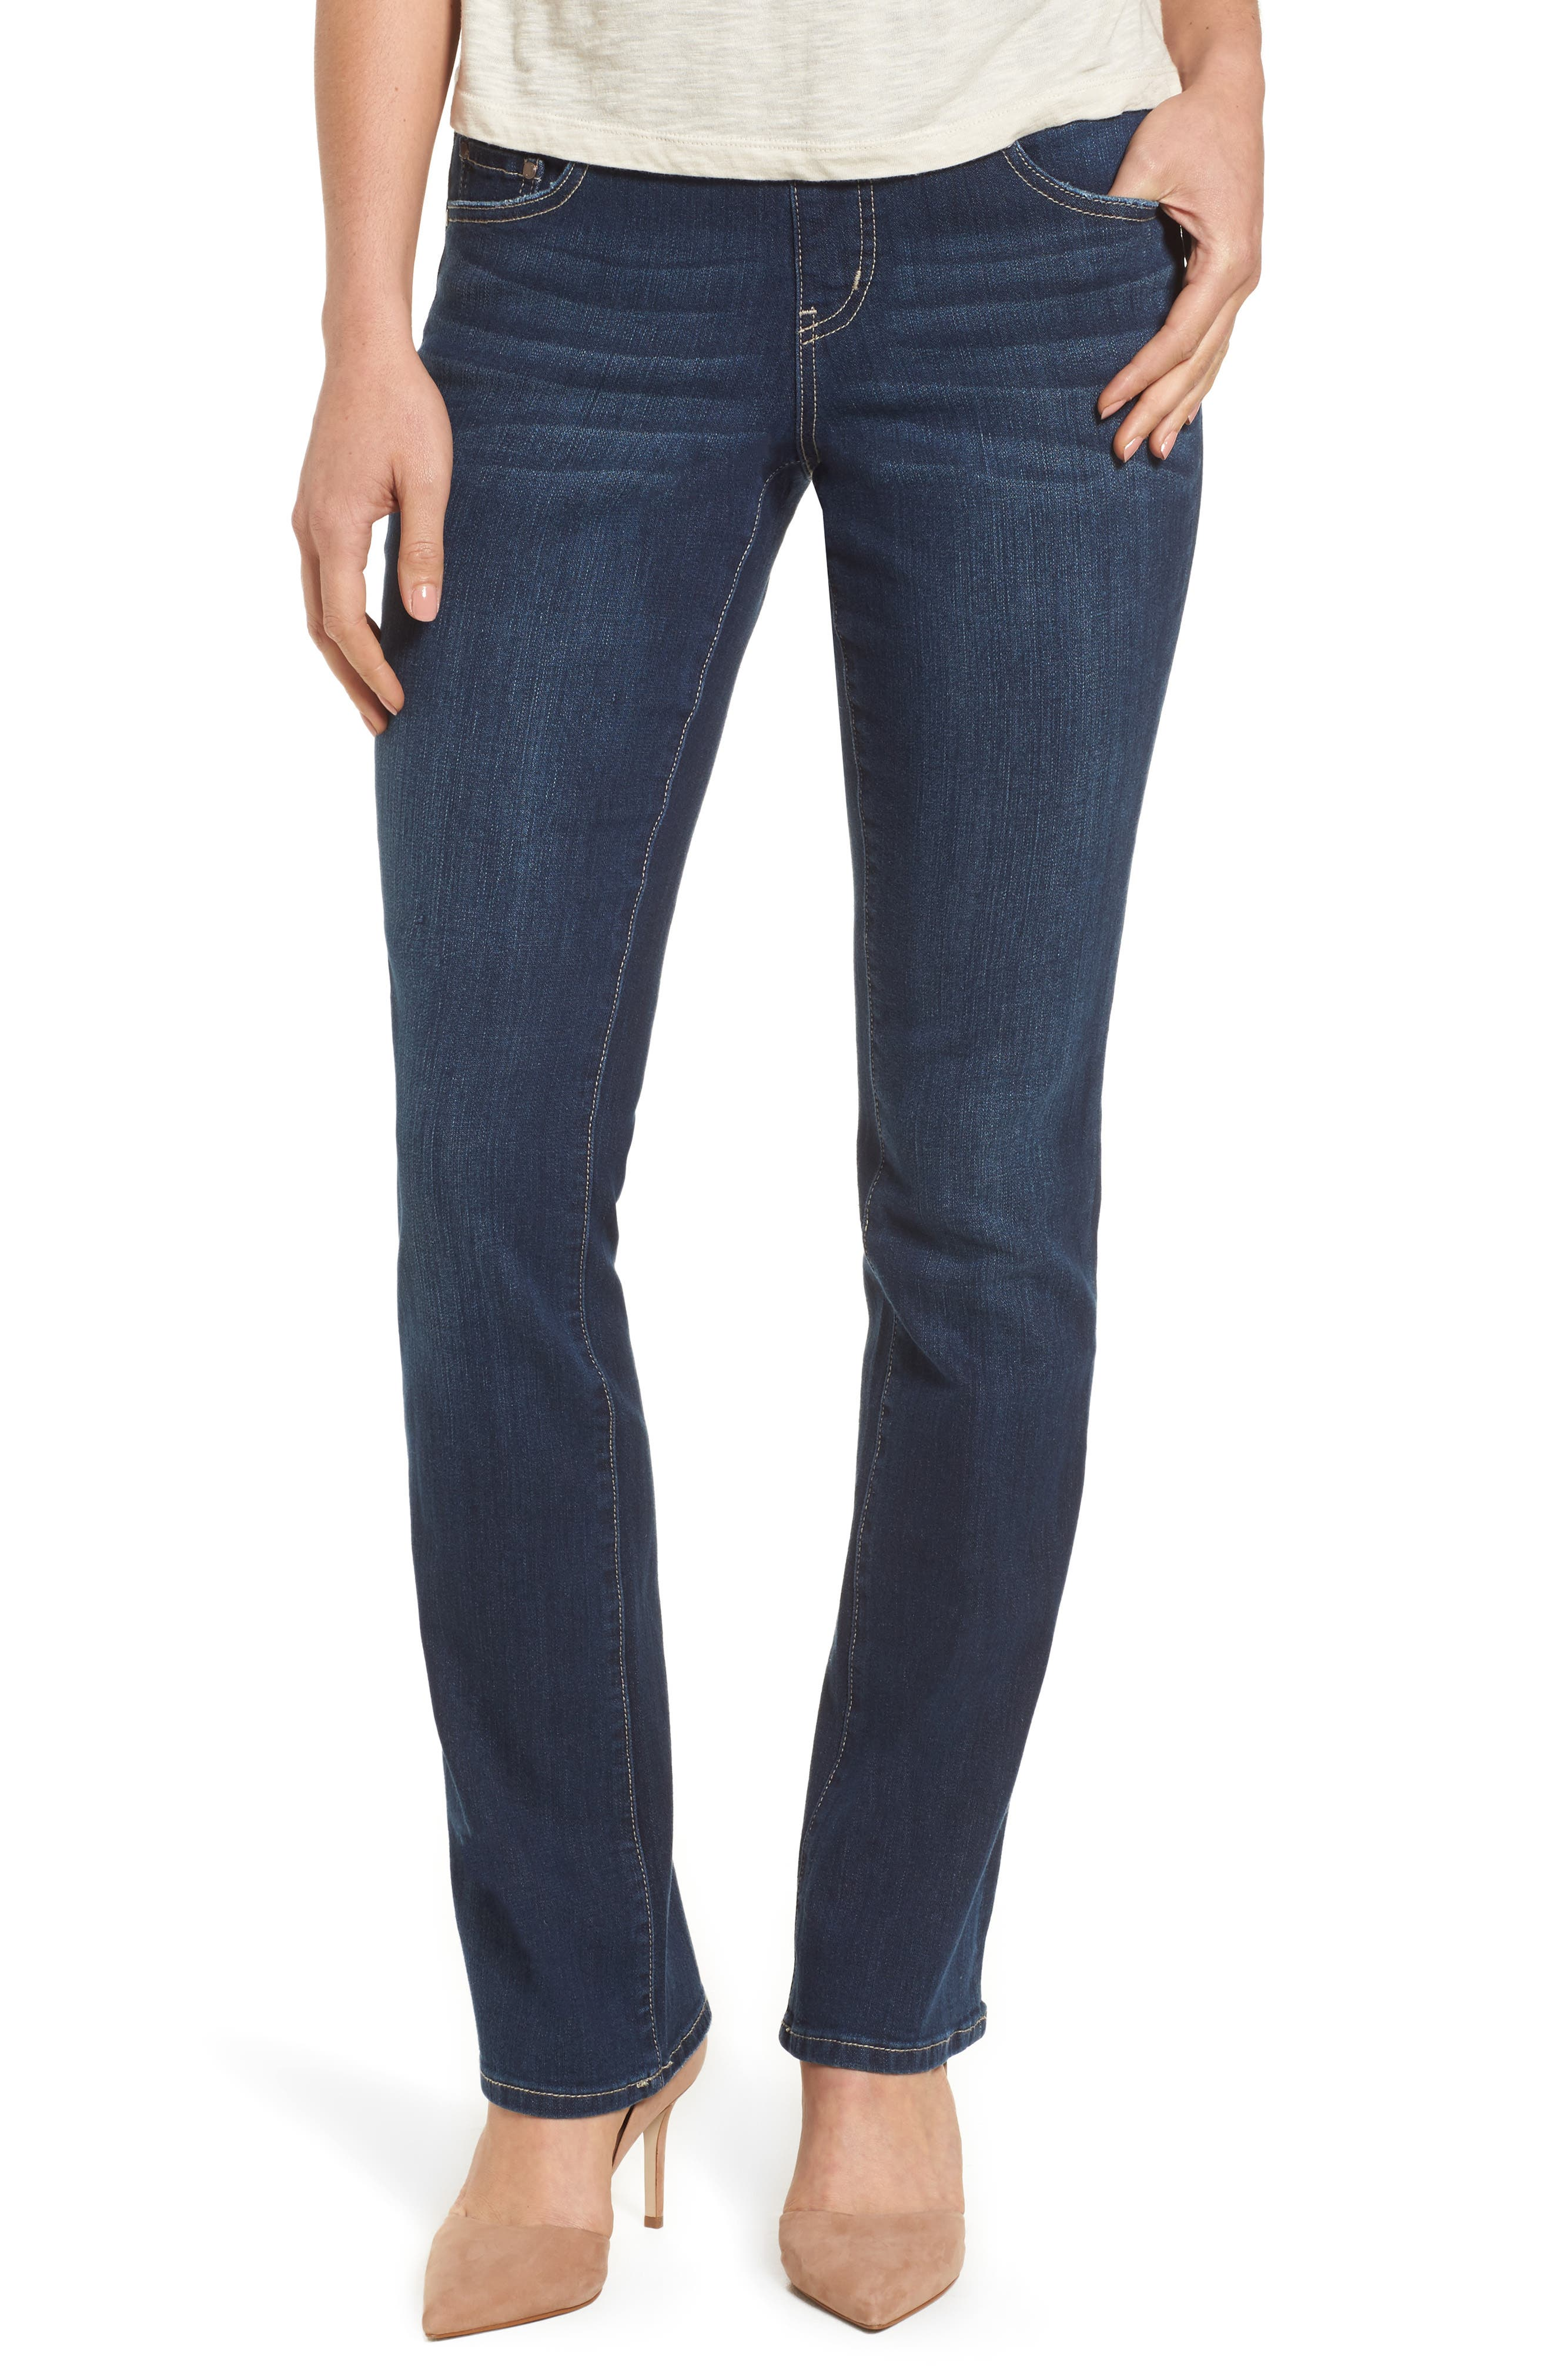 Main Image - Jag Jeans Paley Stretch Bootcut Jeans (Regular & Petite)